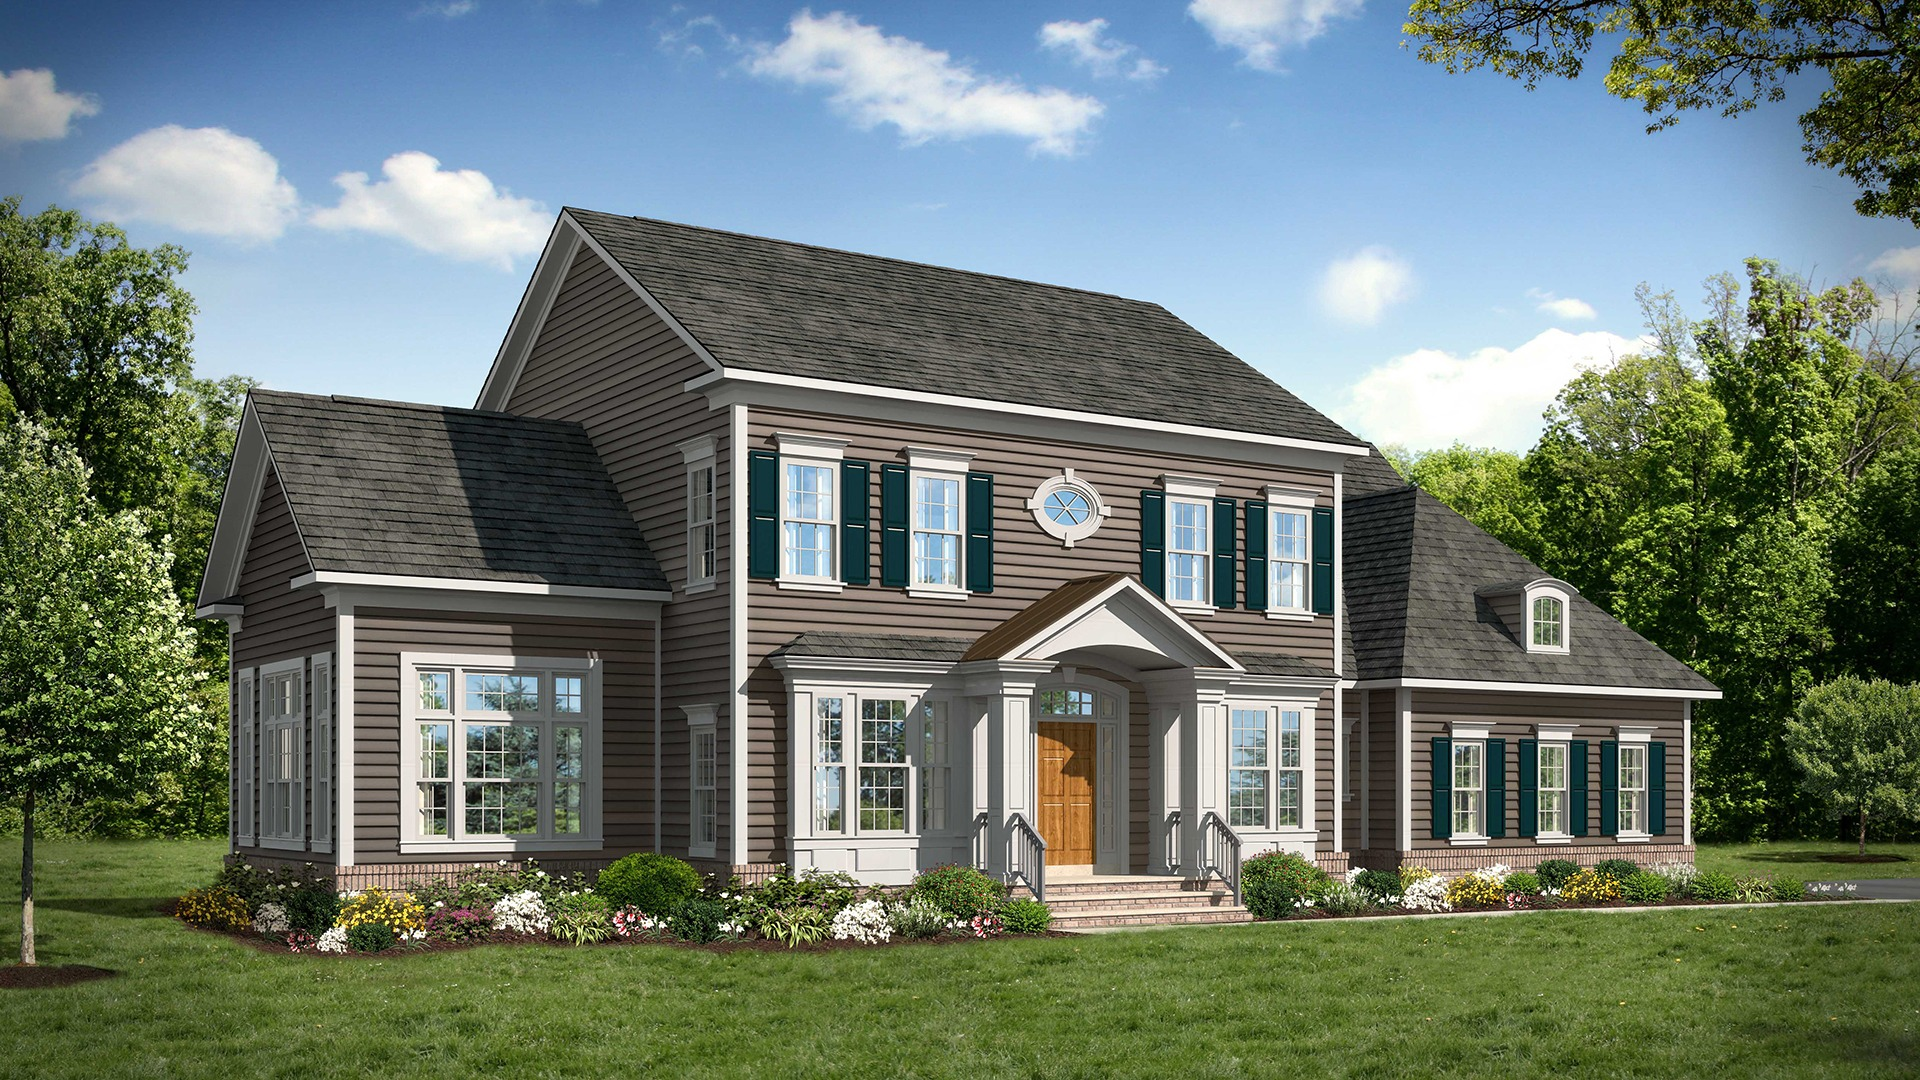 Ashcroft - Standard Elevation - HardiePlank® and Brick. Some optional features shown.